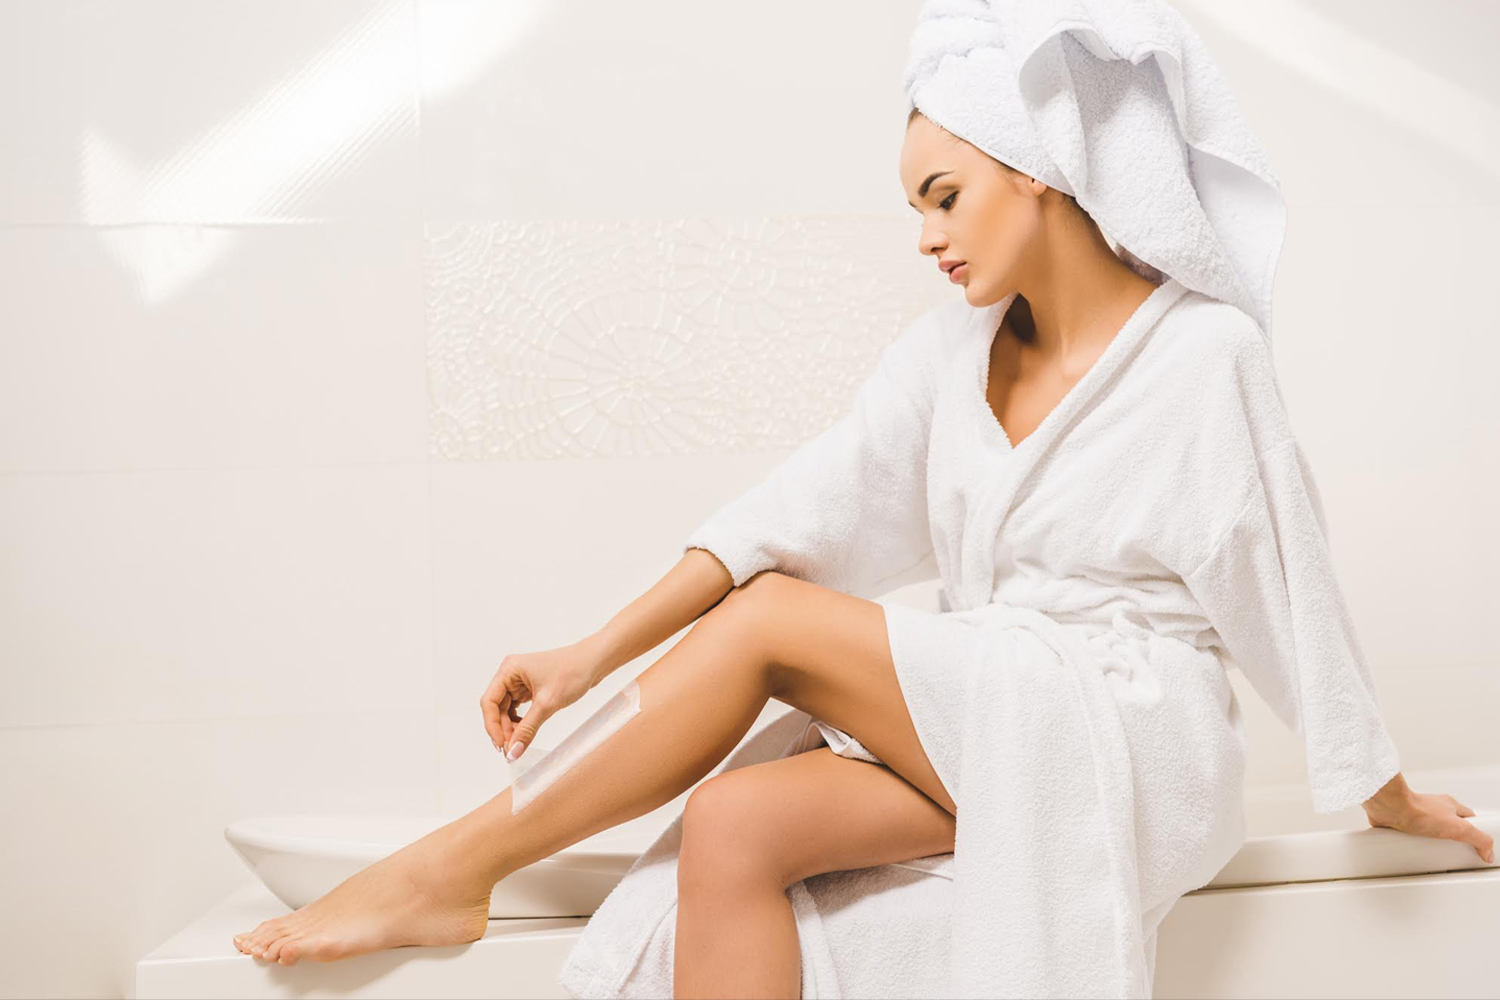 Get Ready for Summer Now with Professional Waxing